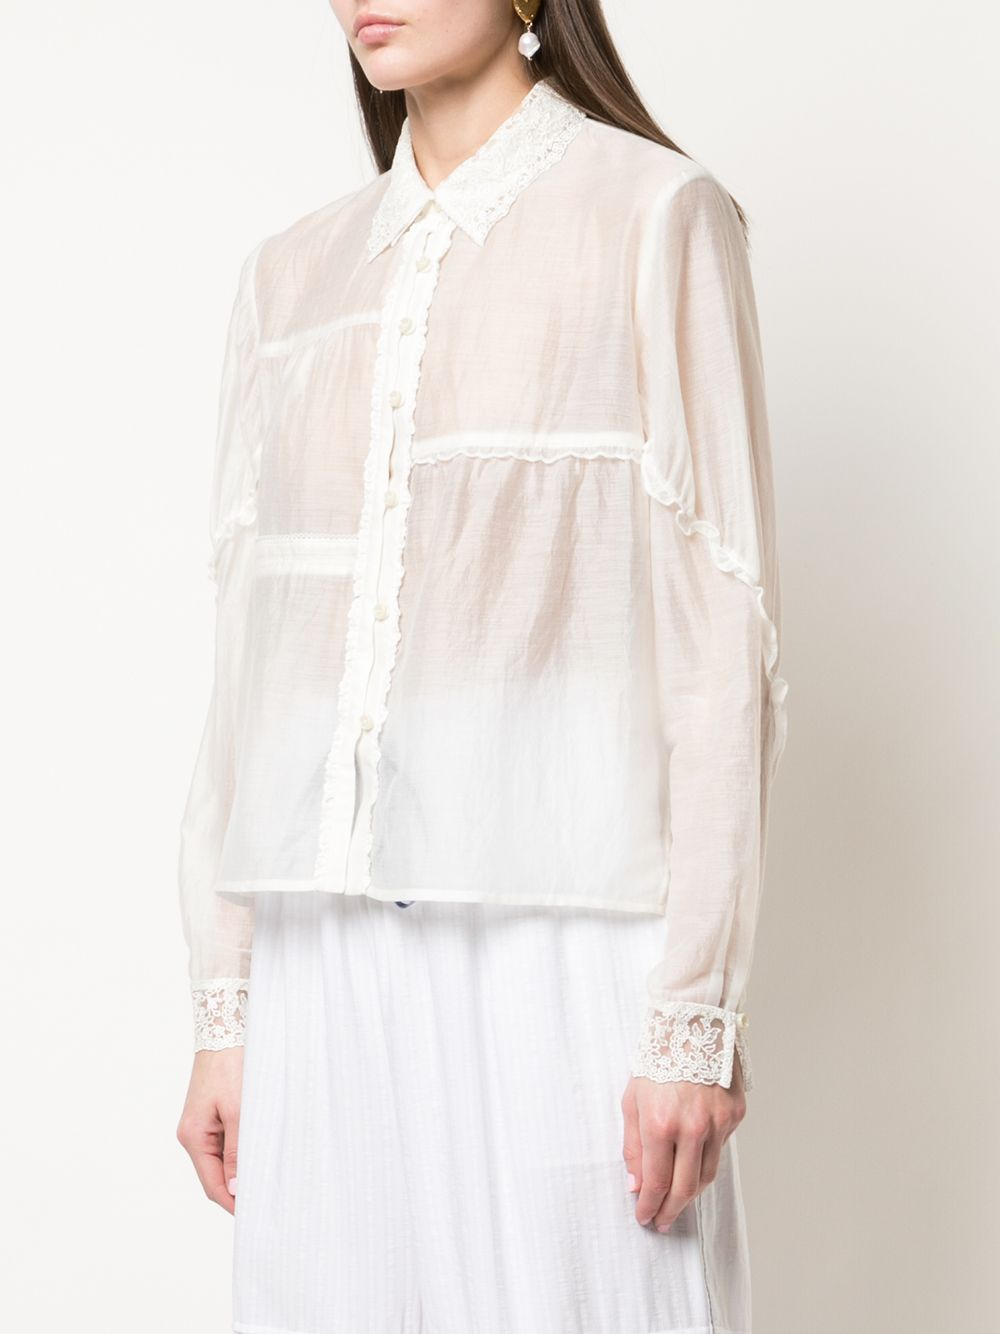 RENLI SU WOMEN BUTTON DOWN SHIRT WITH LACE TRIMMINGS